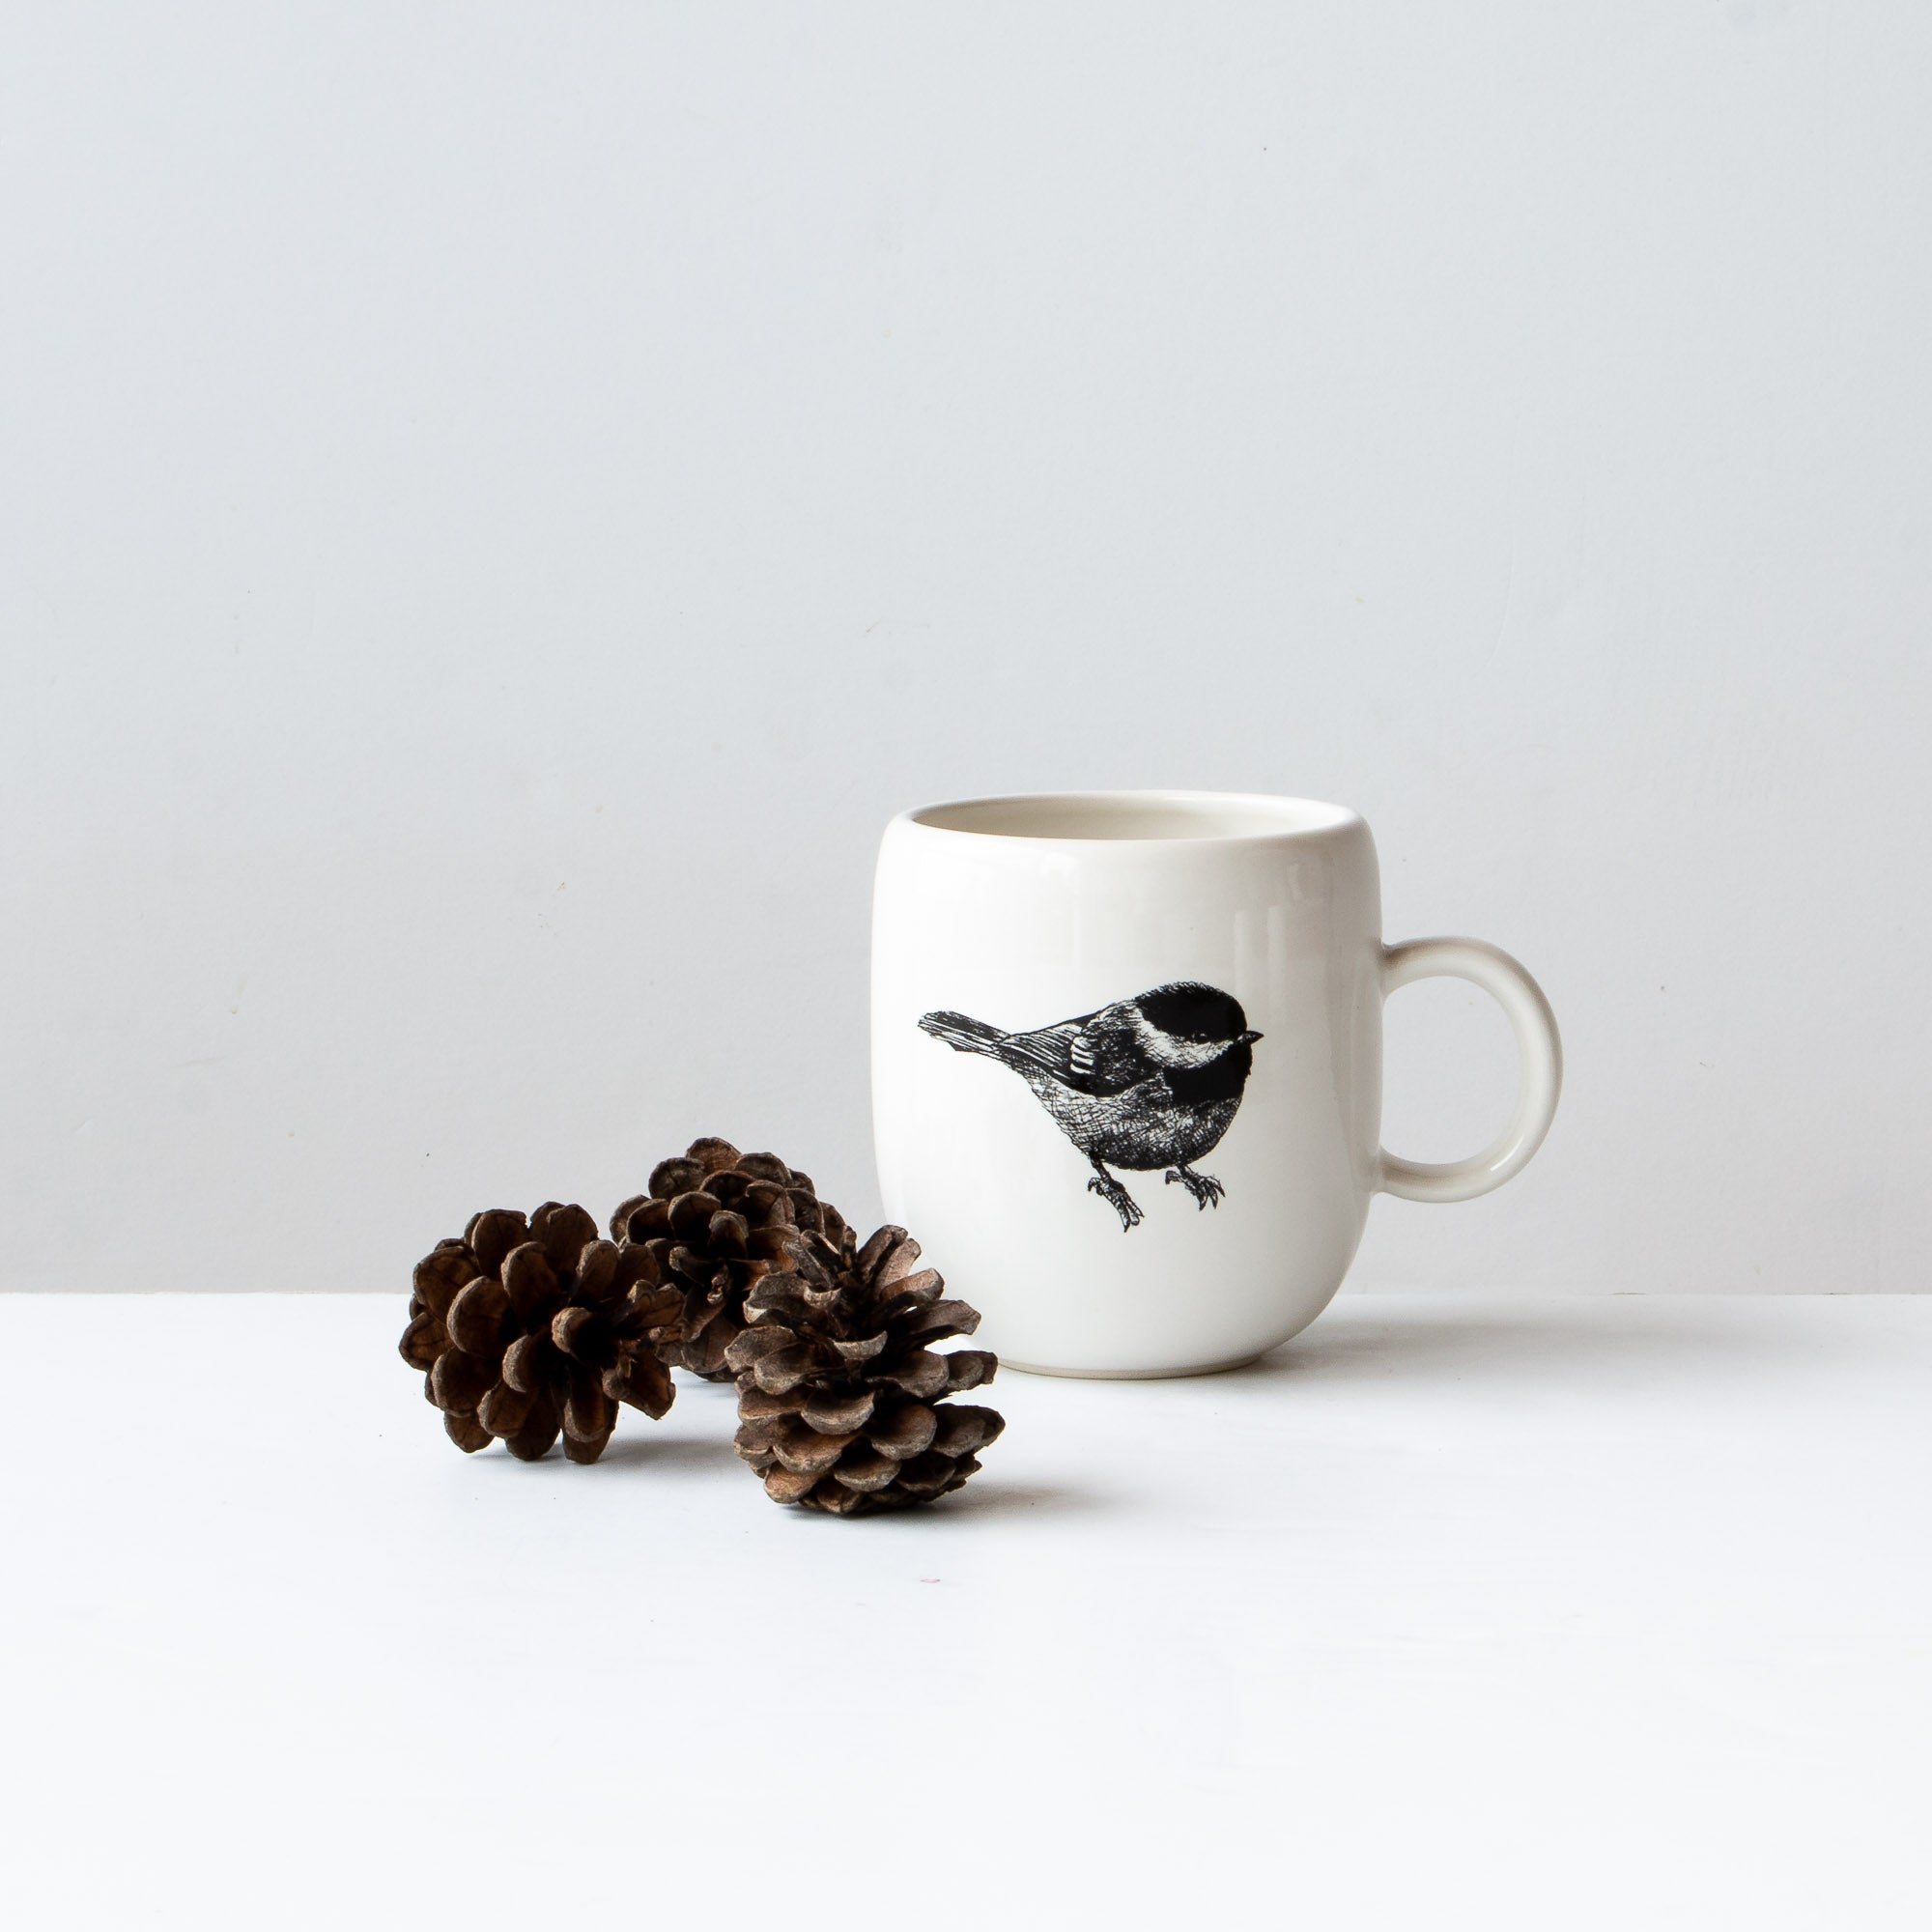 Black-capped Chickadee - Handmade Porcelain Coffee Mug / Cup - Sold by Chic & Basta